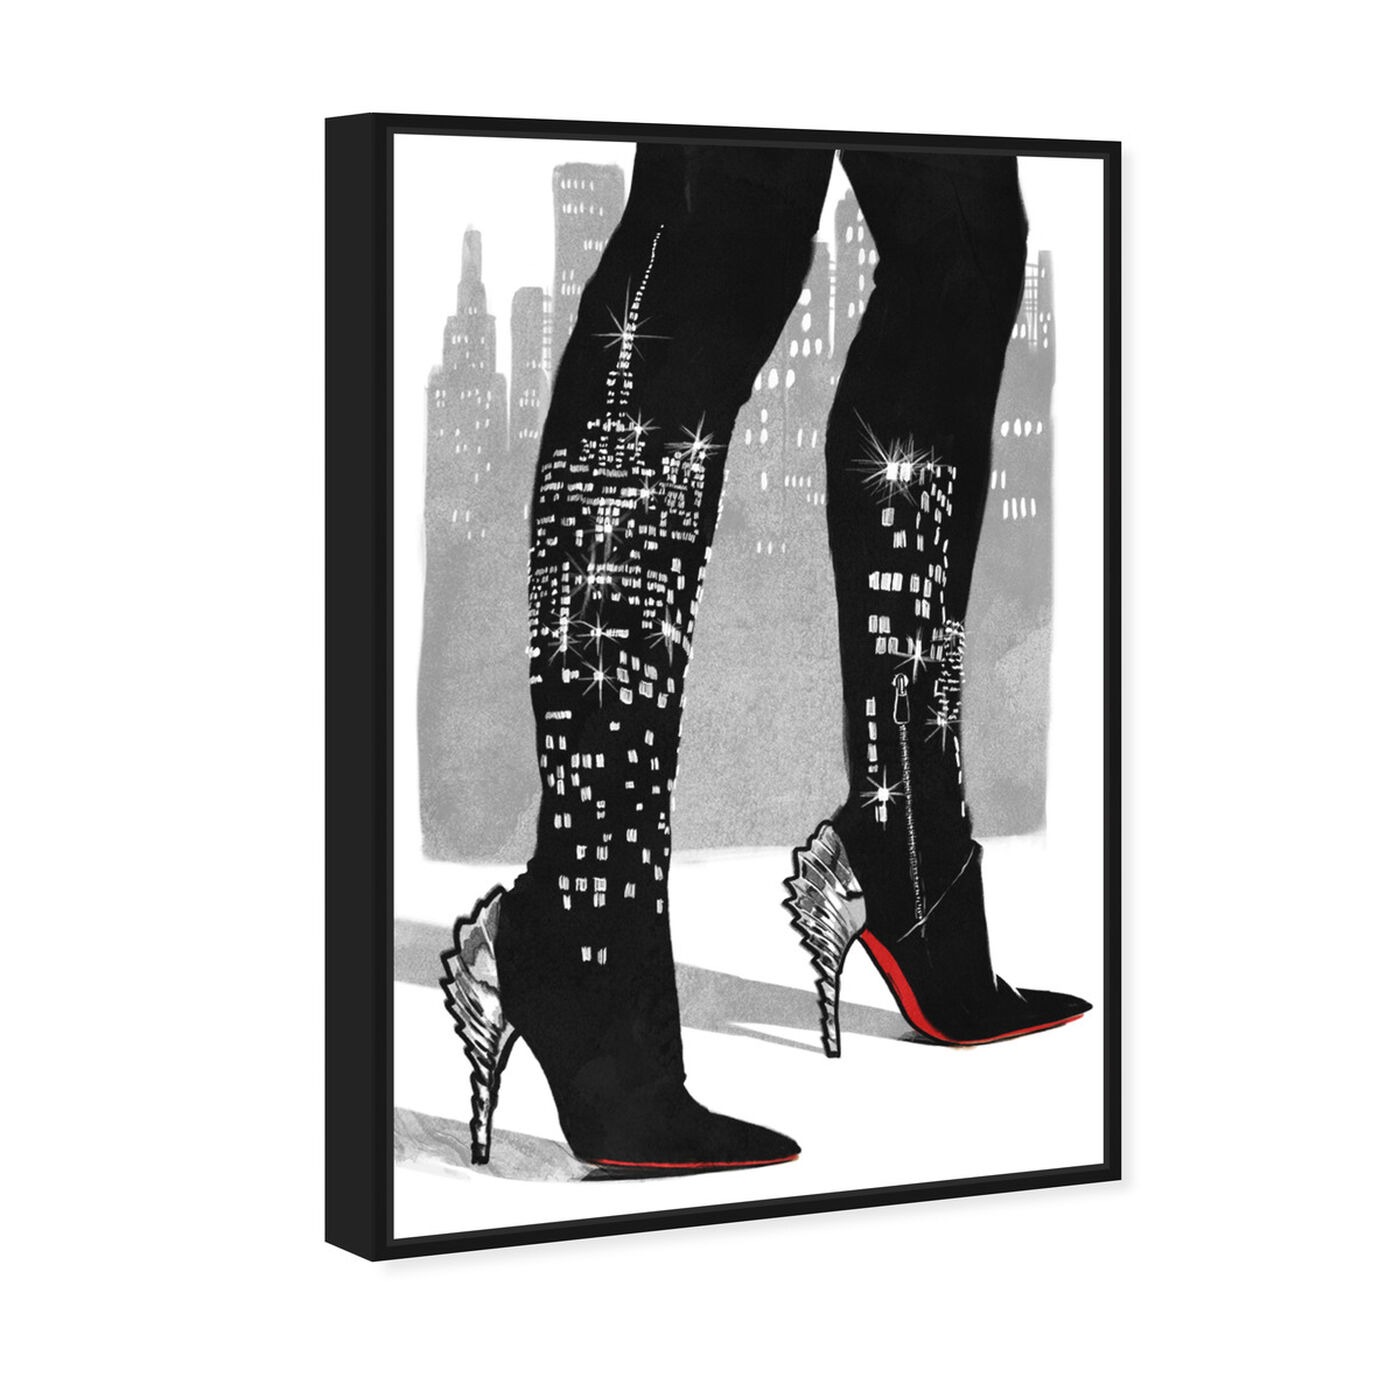 Angled view of City Lights featuring fashion and glam and shoes art.